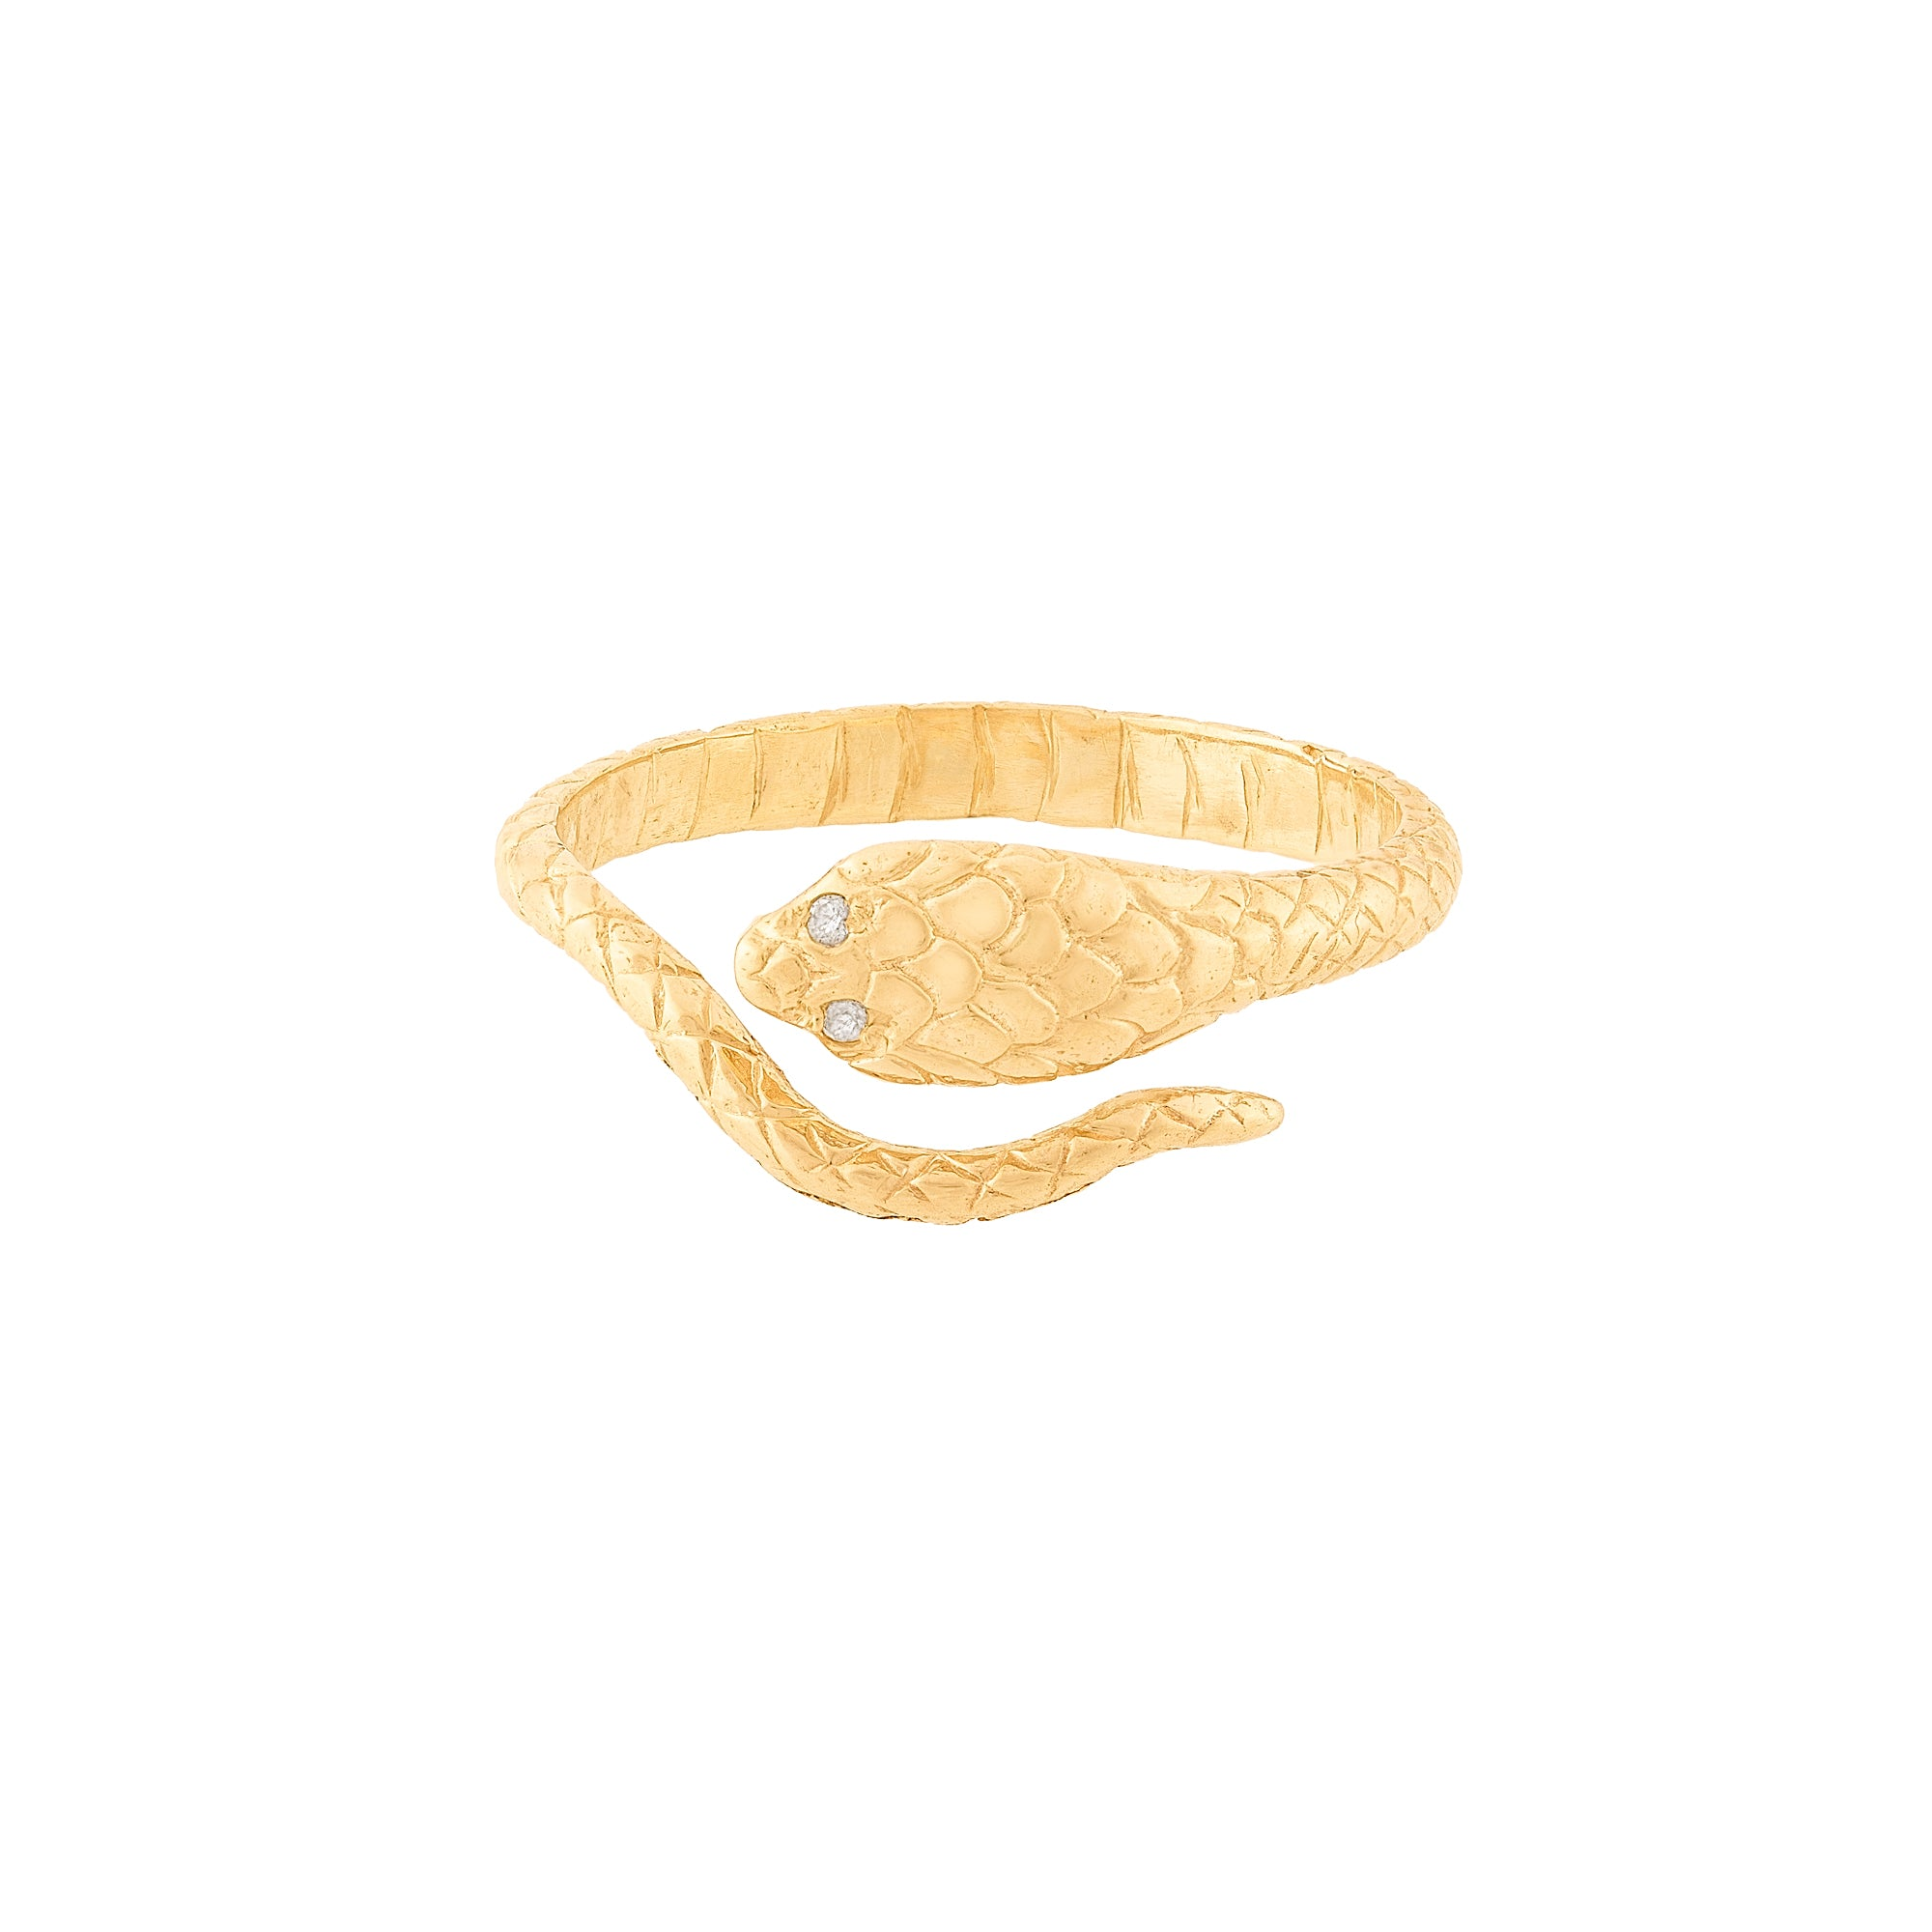 Gold & White Diamond Cobra Ring by Celine Doust for Broken English Jewelry